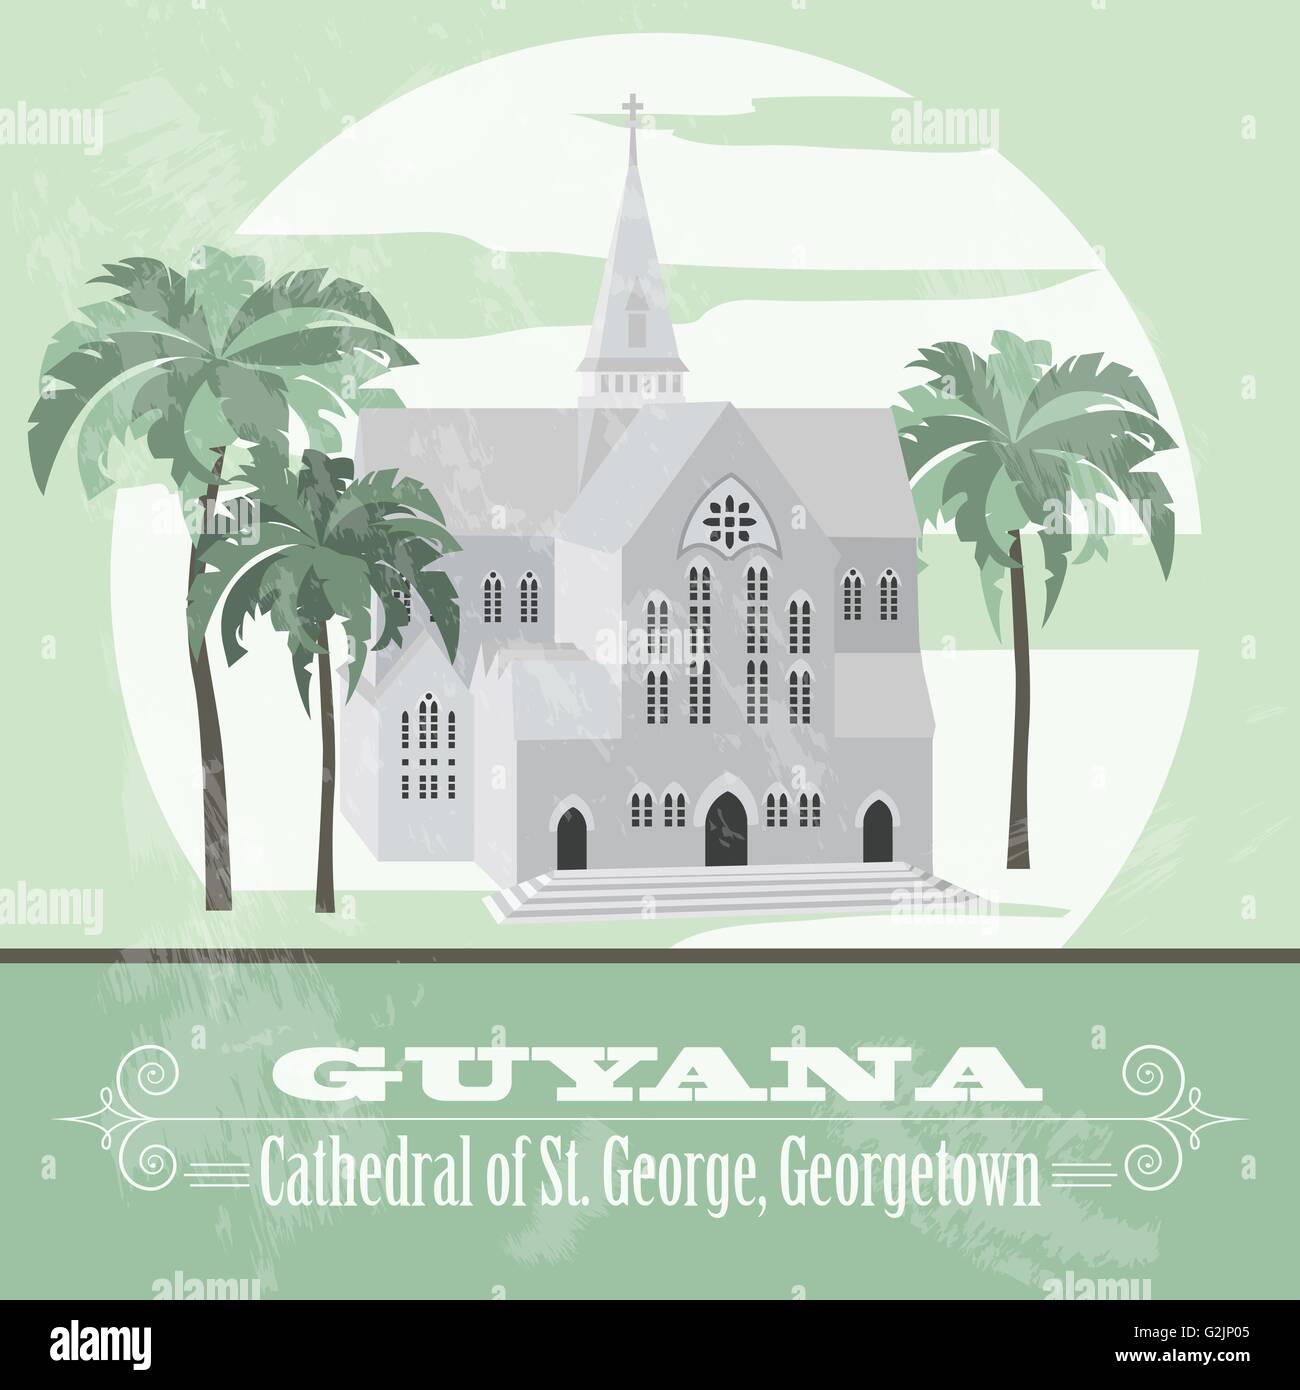 Guyana  landmarks. Retro styled image.  Cathedral of St. George, Georgetown. Vector illustration - Stock Vector